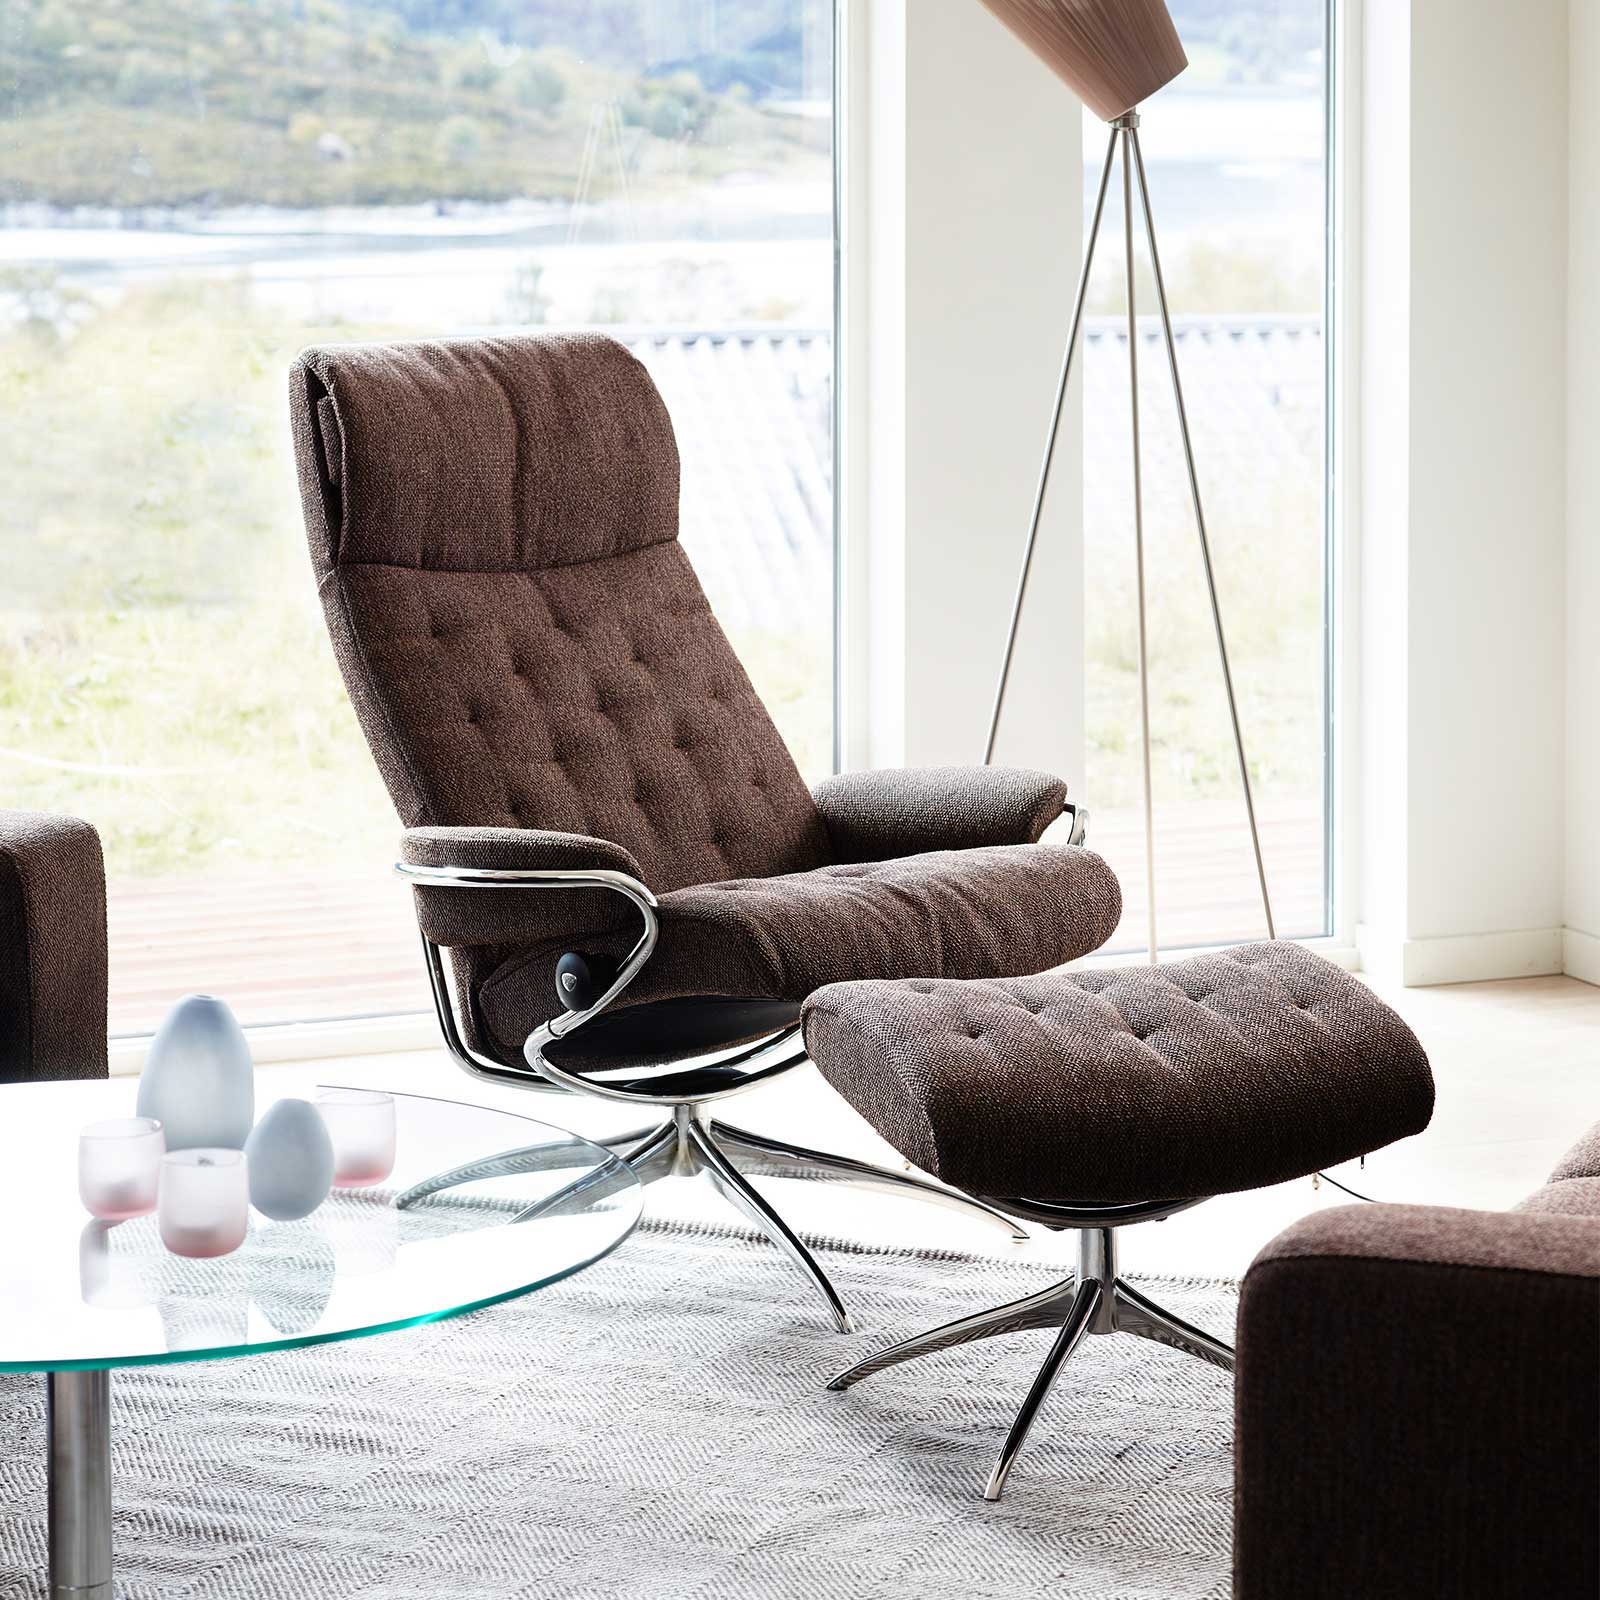 Stressless Sessel Metro Stressless Metro High Back Ocean Brown Gestell Chrom Mit Hocker